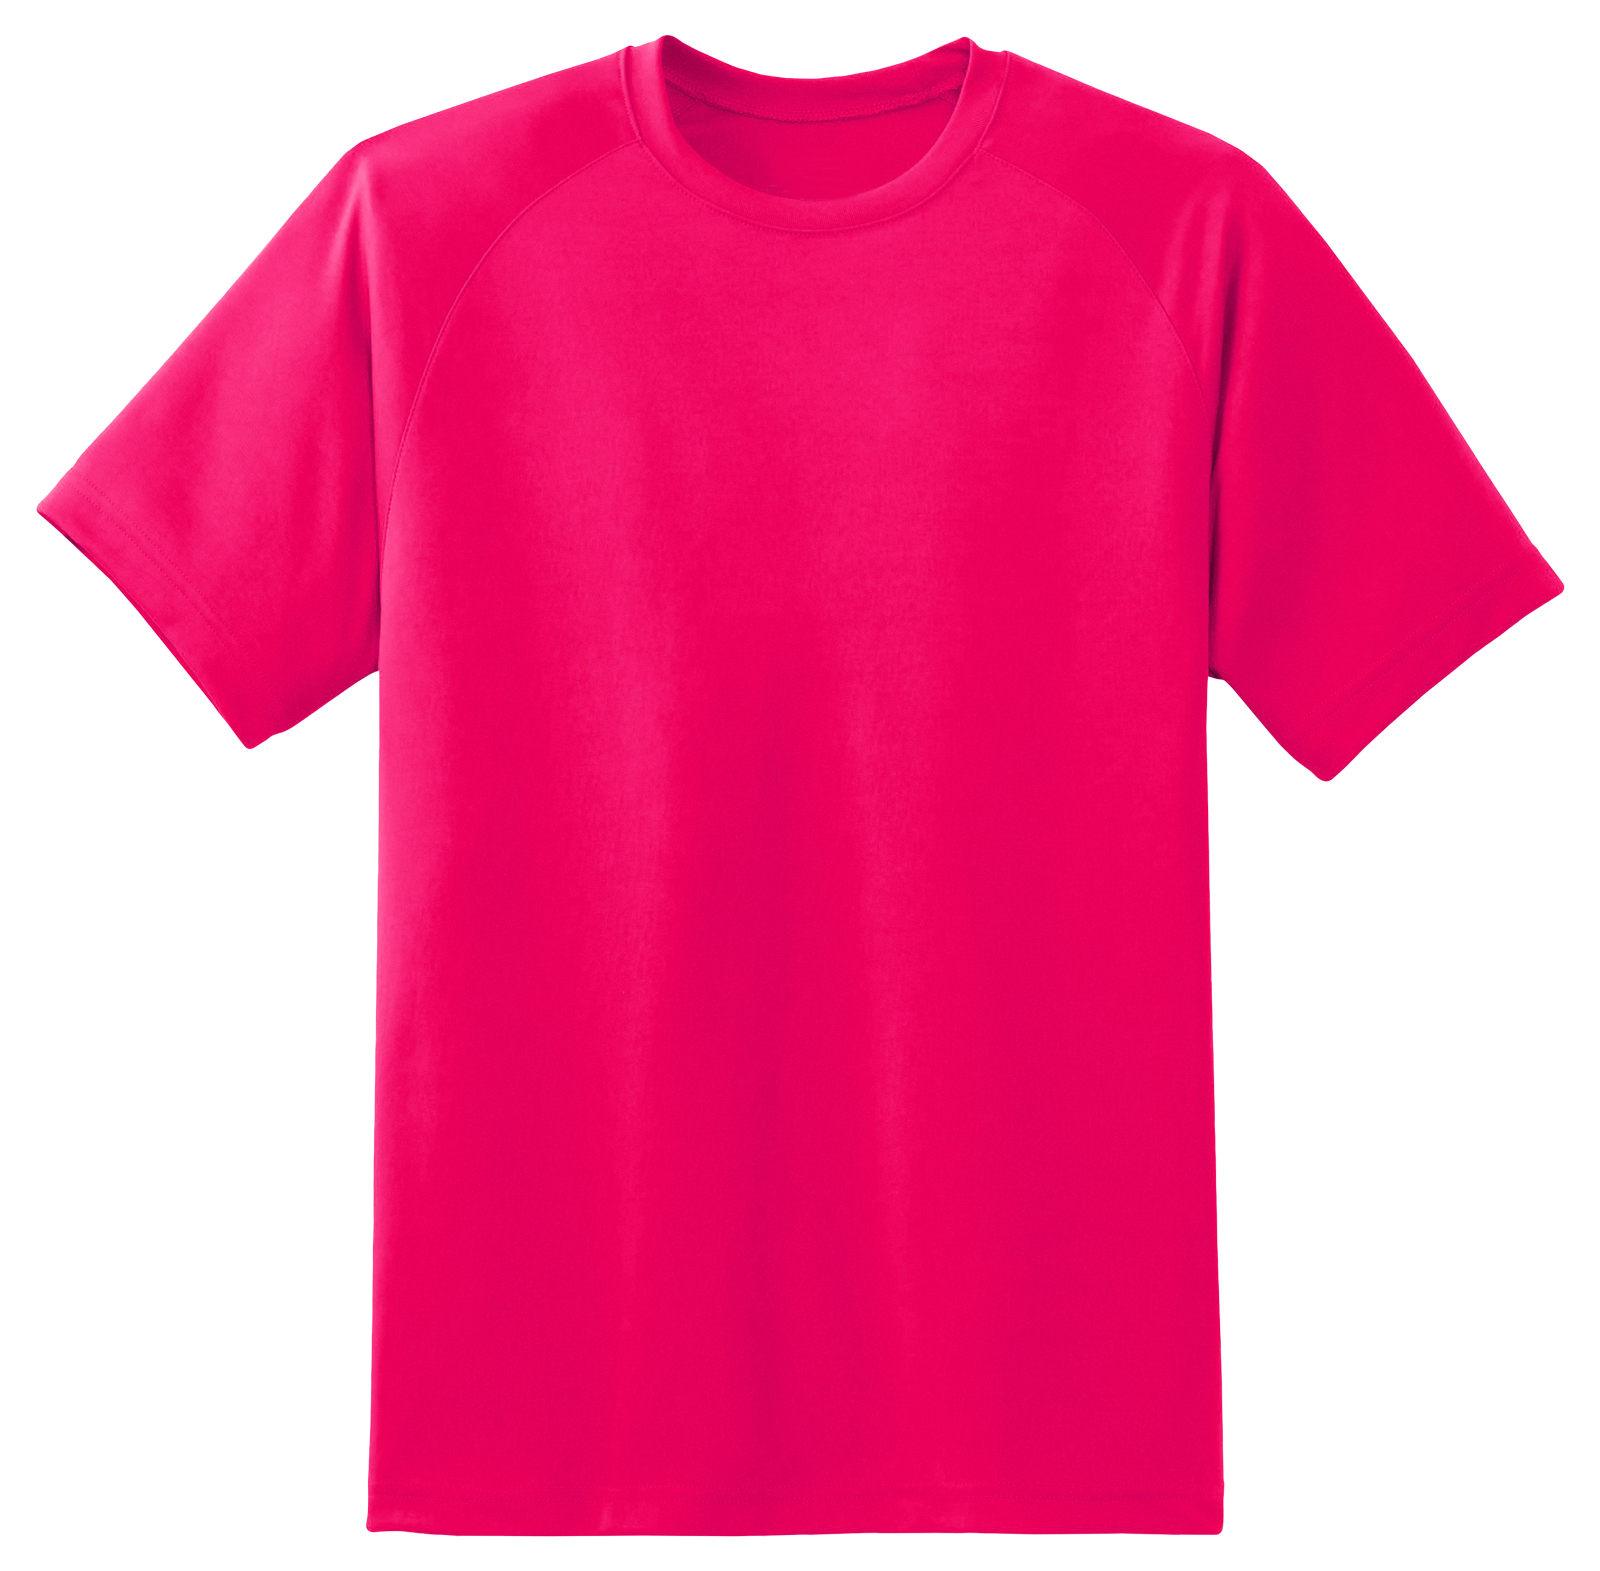 T Shirt PNG Transparent Image - Tshirt PNG